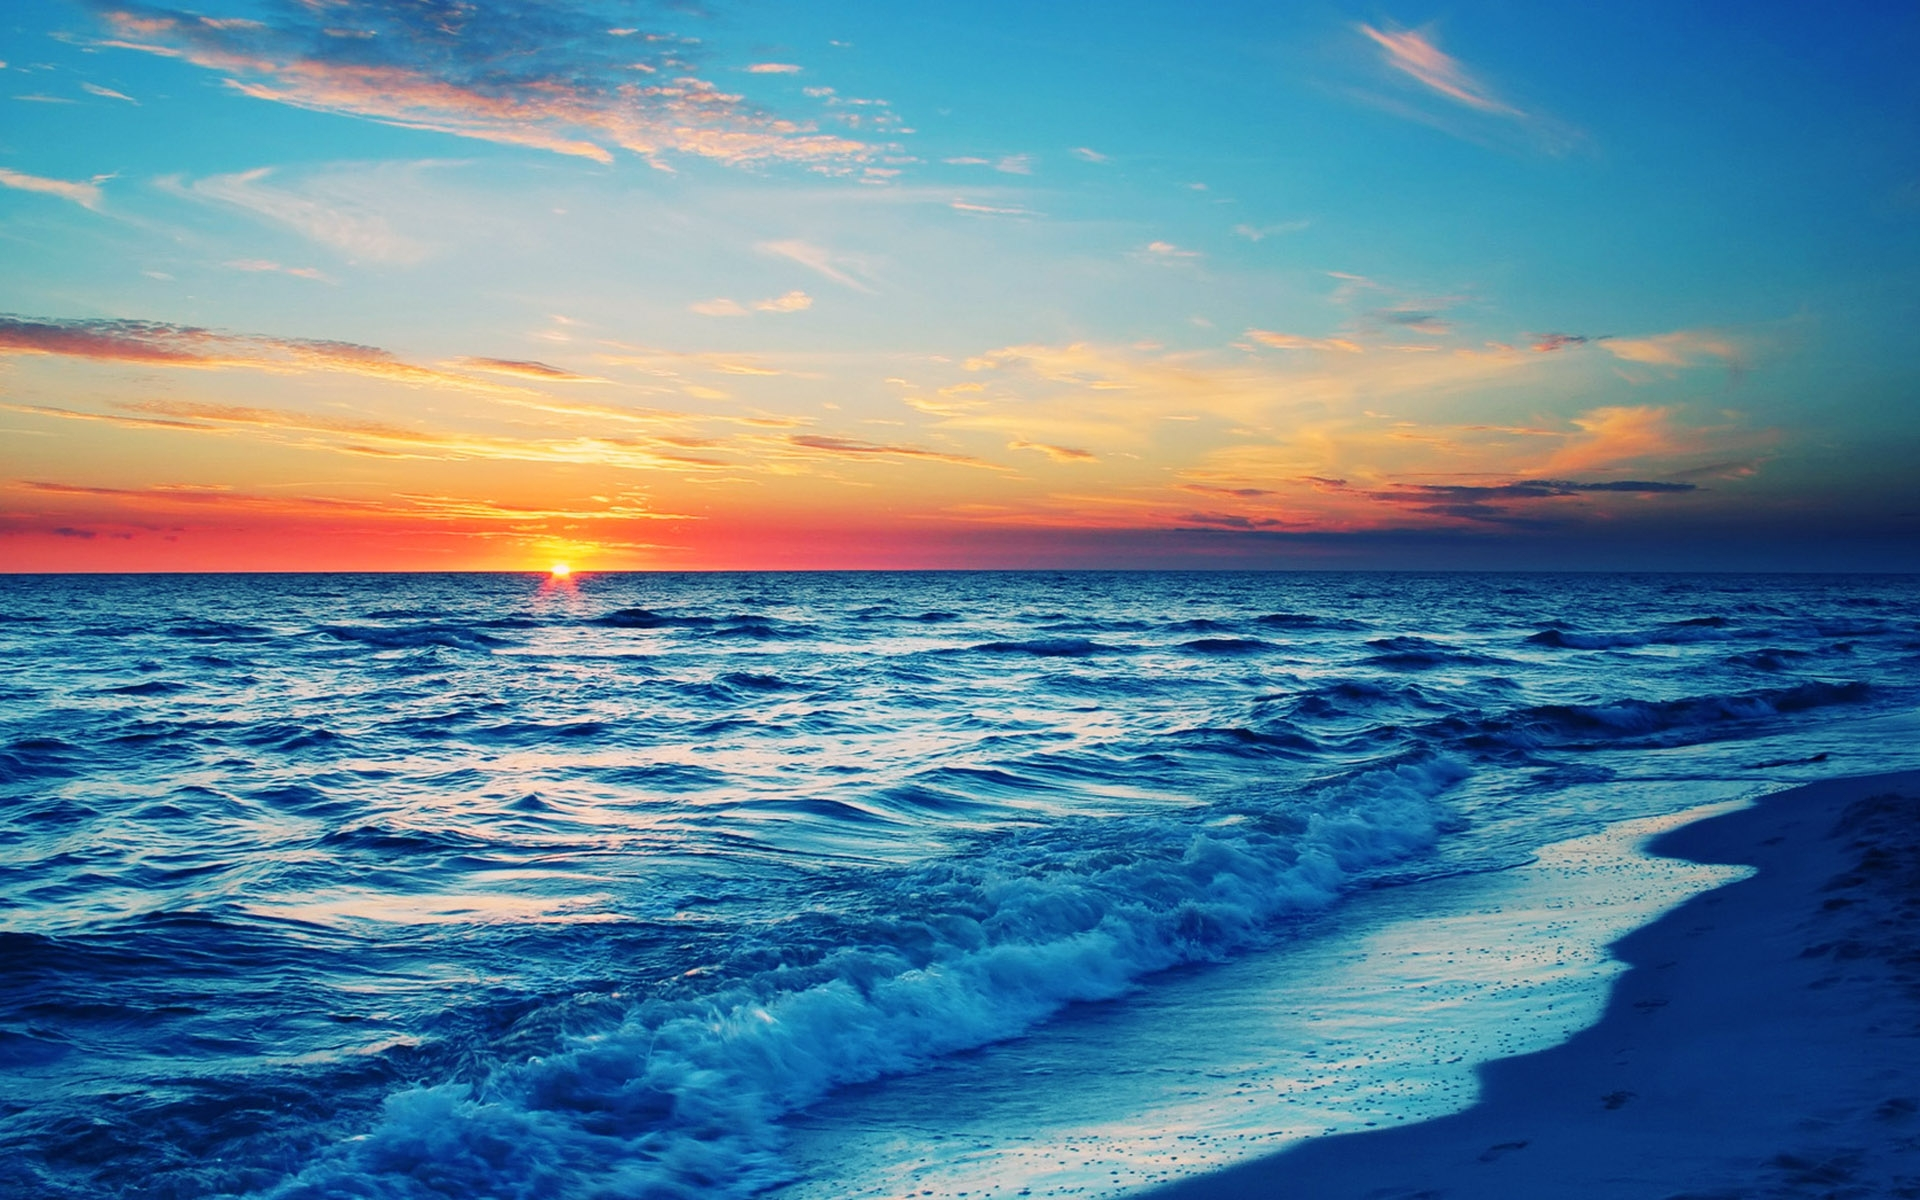 Gallery For gt Beautiful Beach Desktop Wallpaper 1920x1200